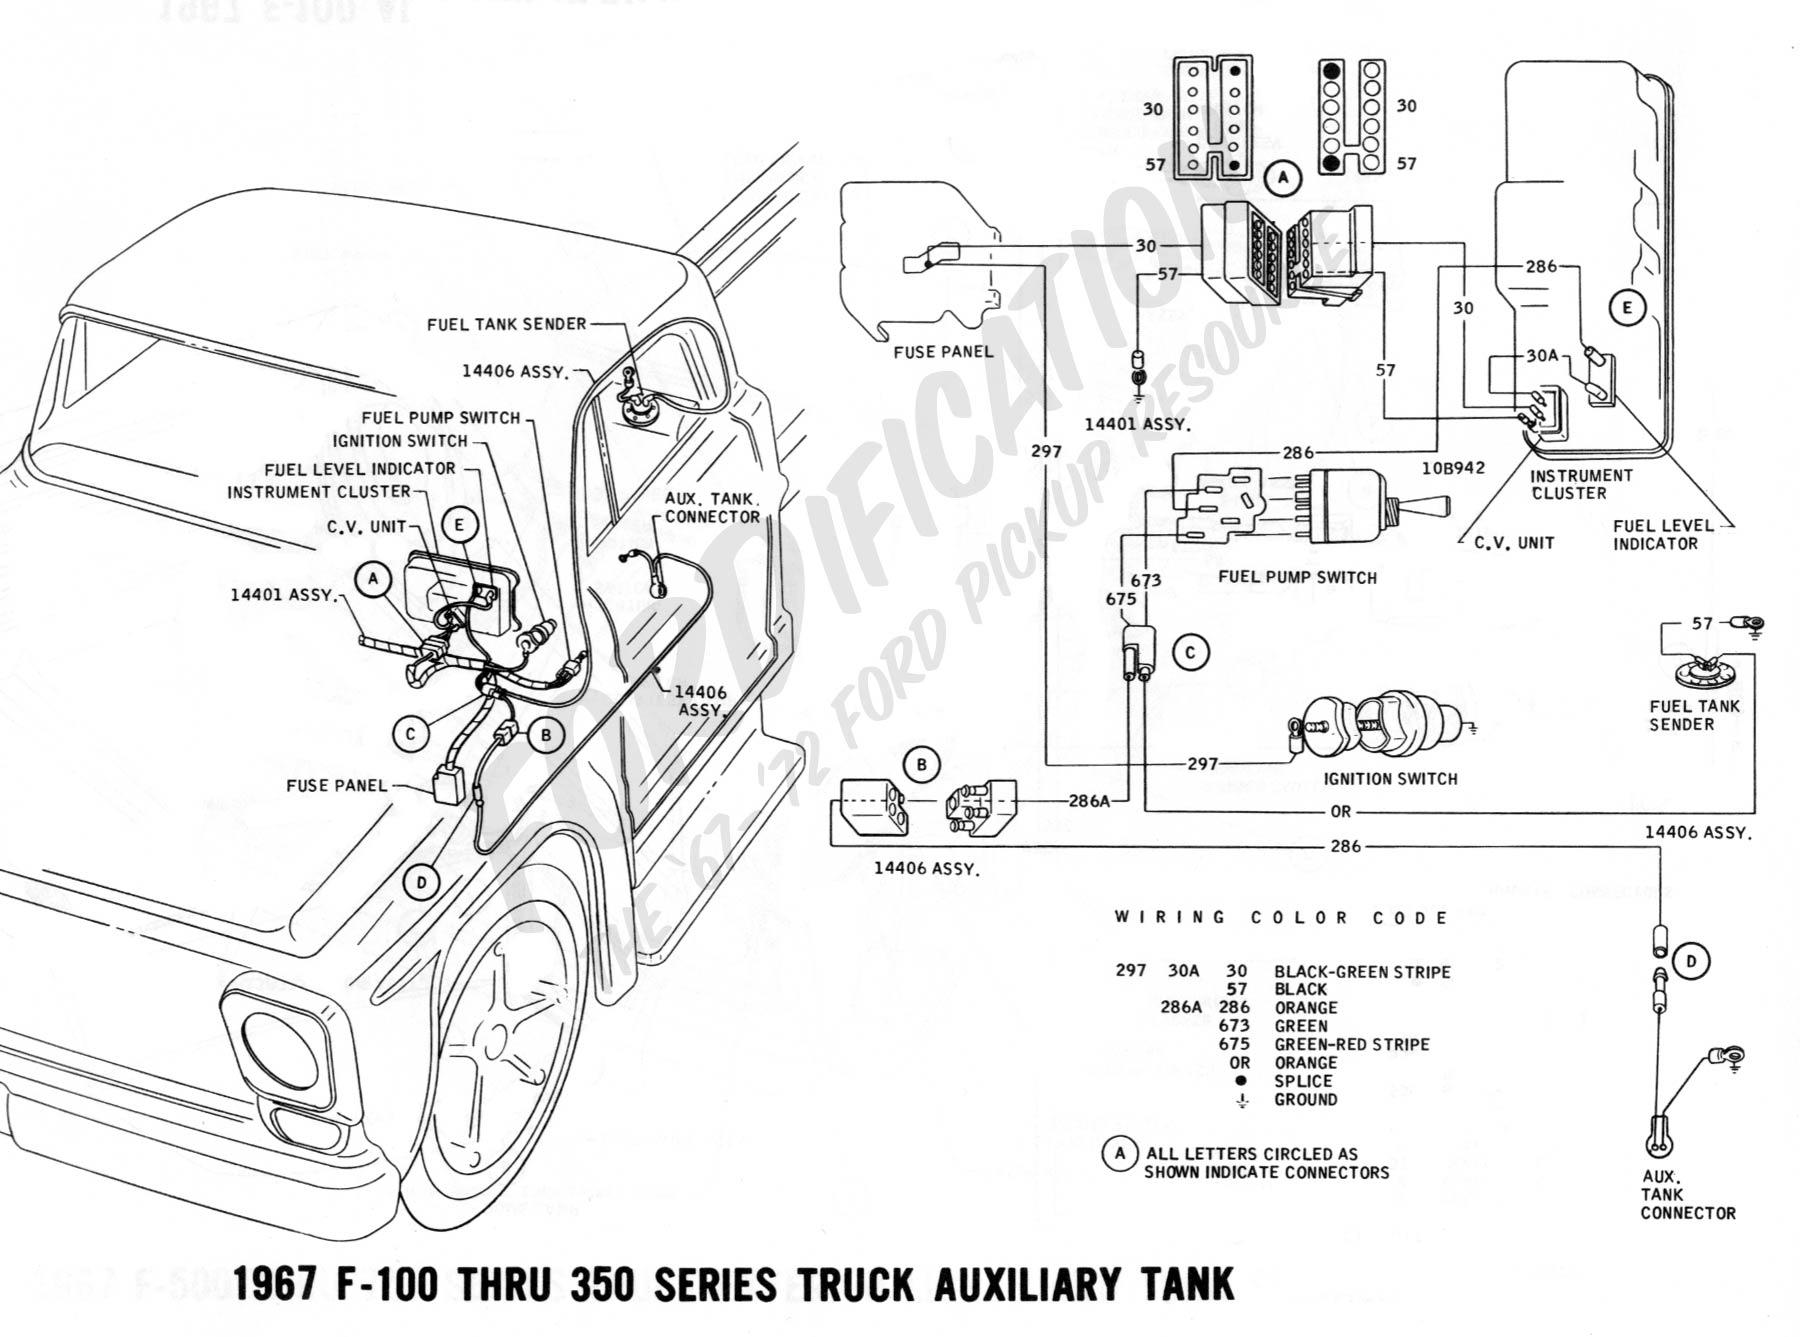 wiring 1967auxtank ford truck technical drawings and schematics section h wiring Ford F 150 Transfer Case Diagram at bayanpartner.co